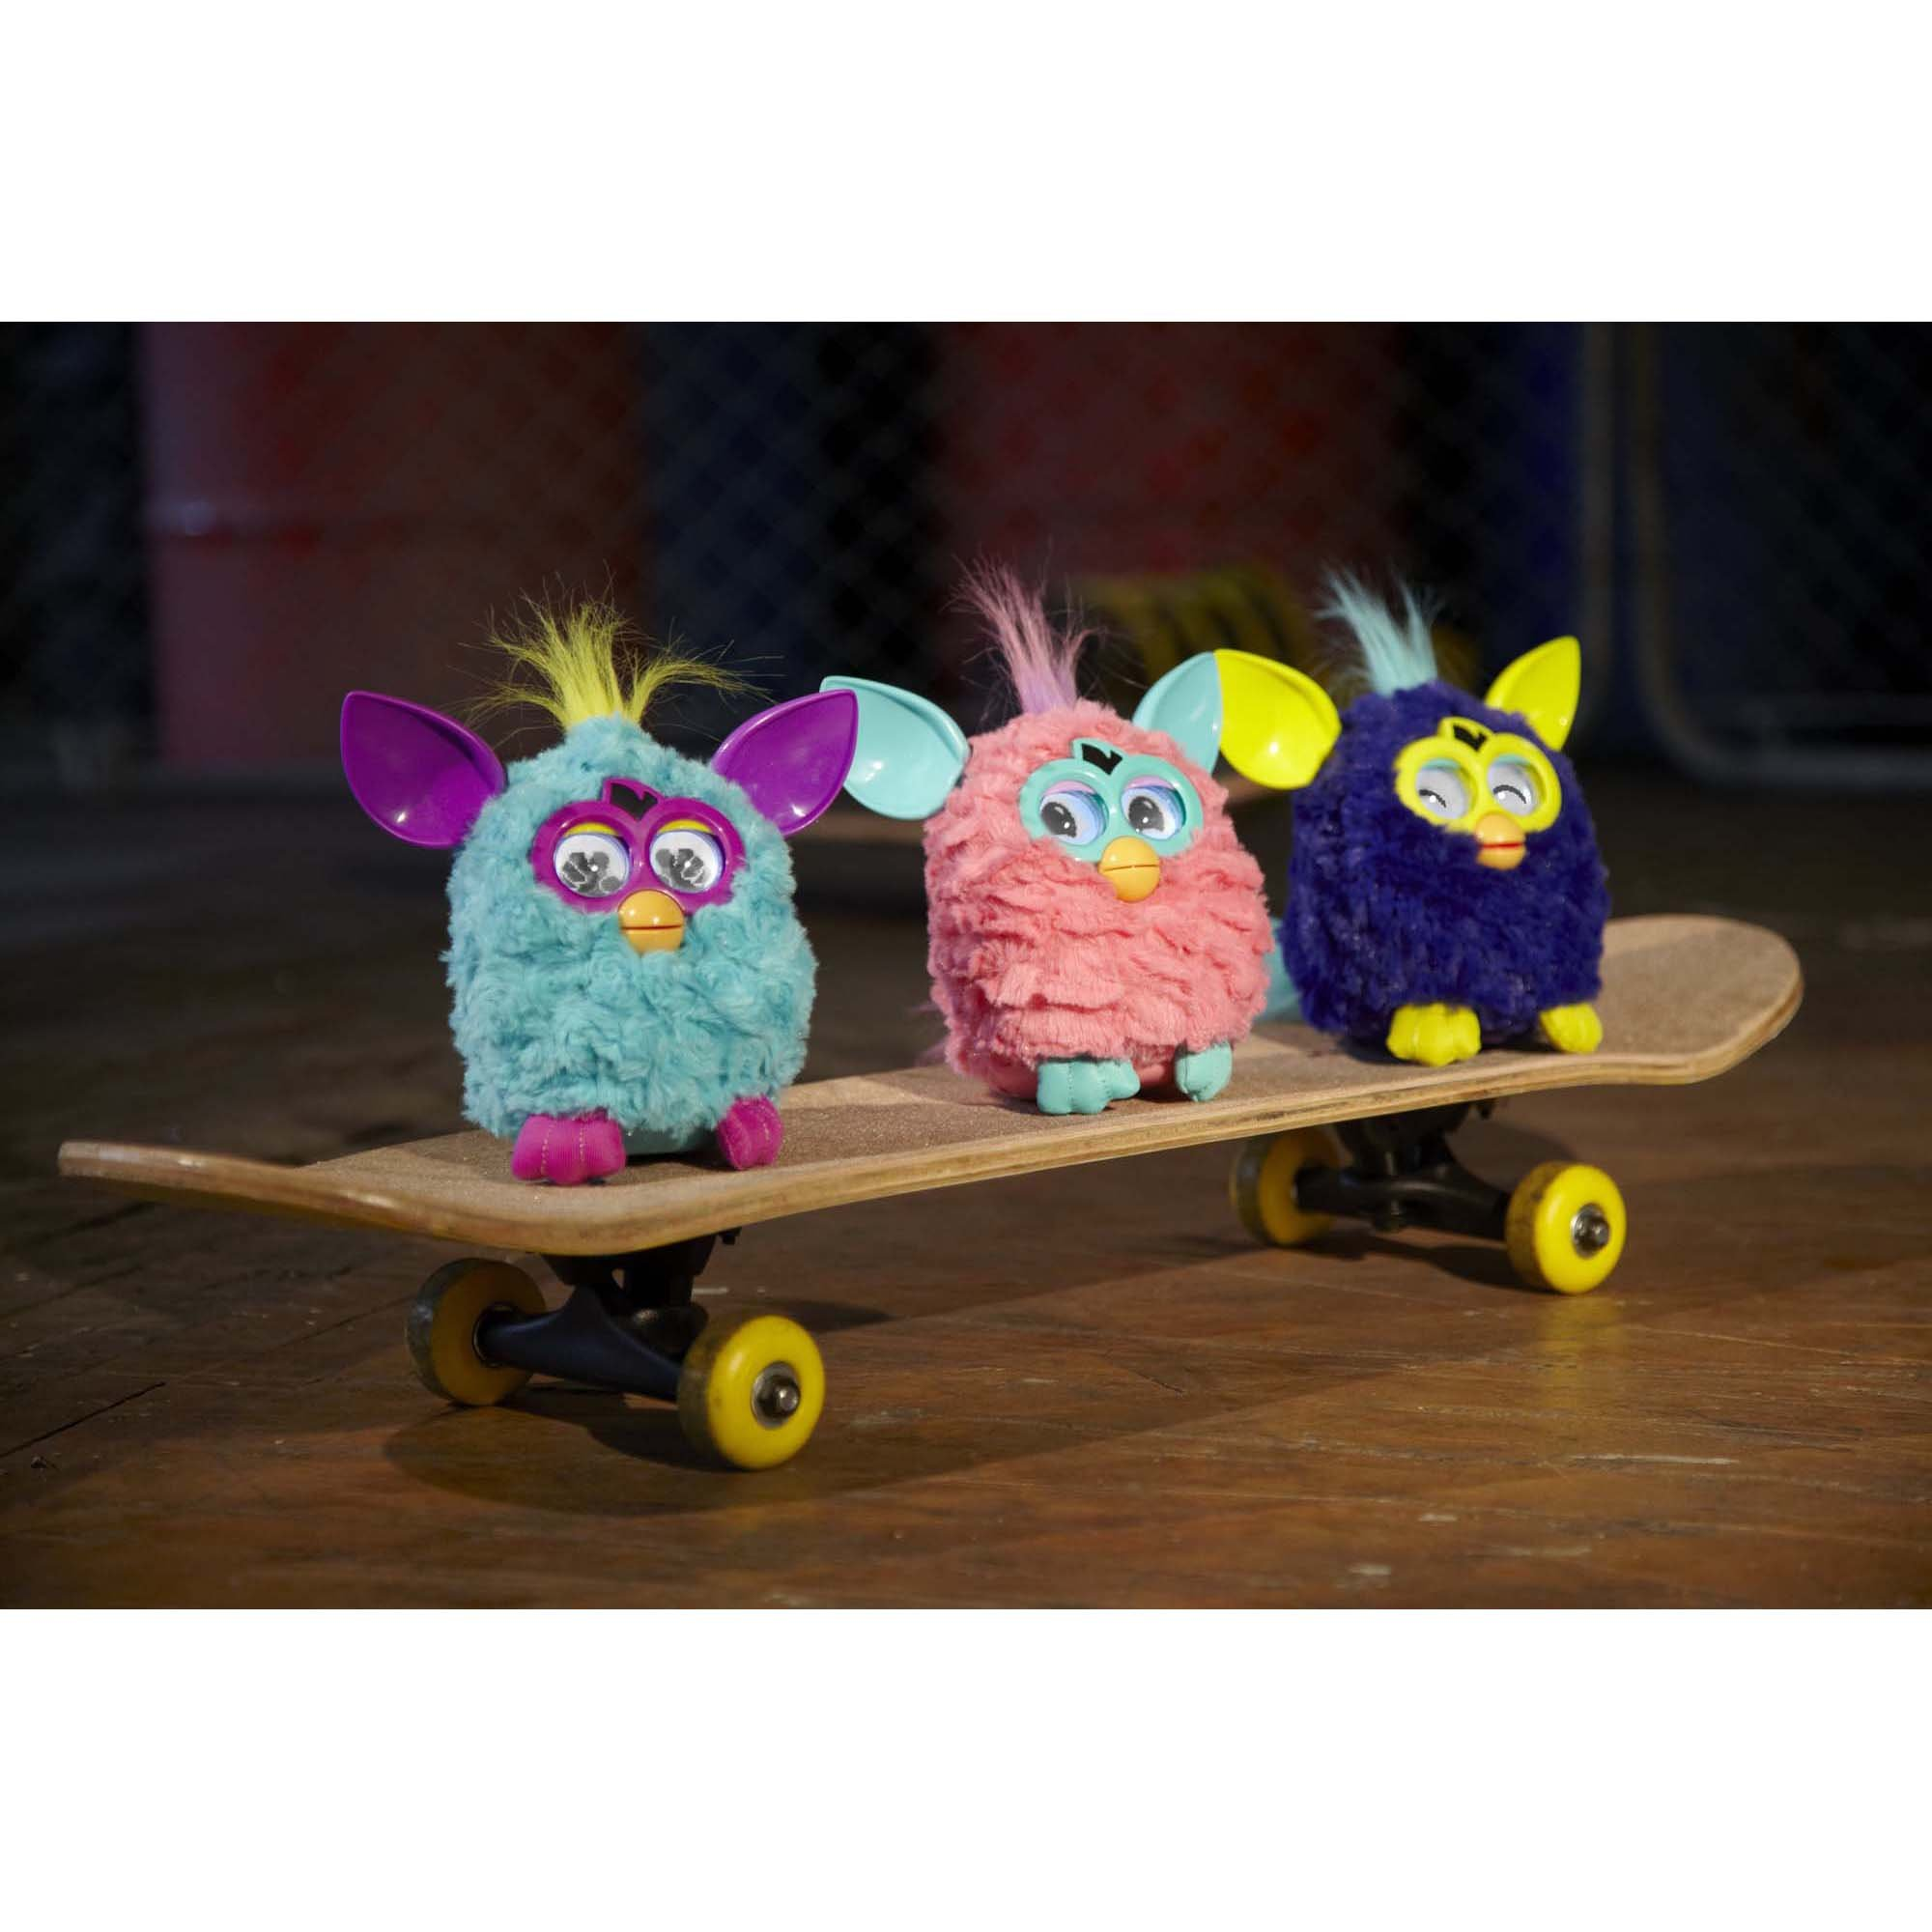 Furby (Pink/Teal) by Furby (Image #10)